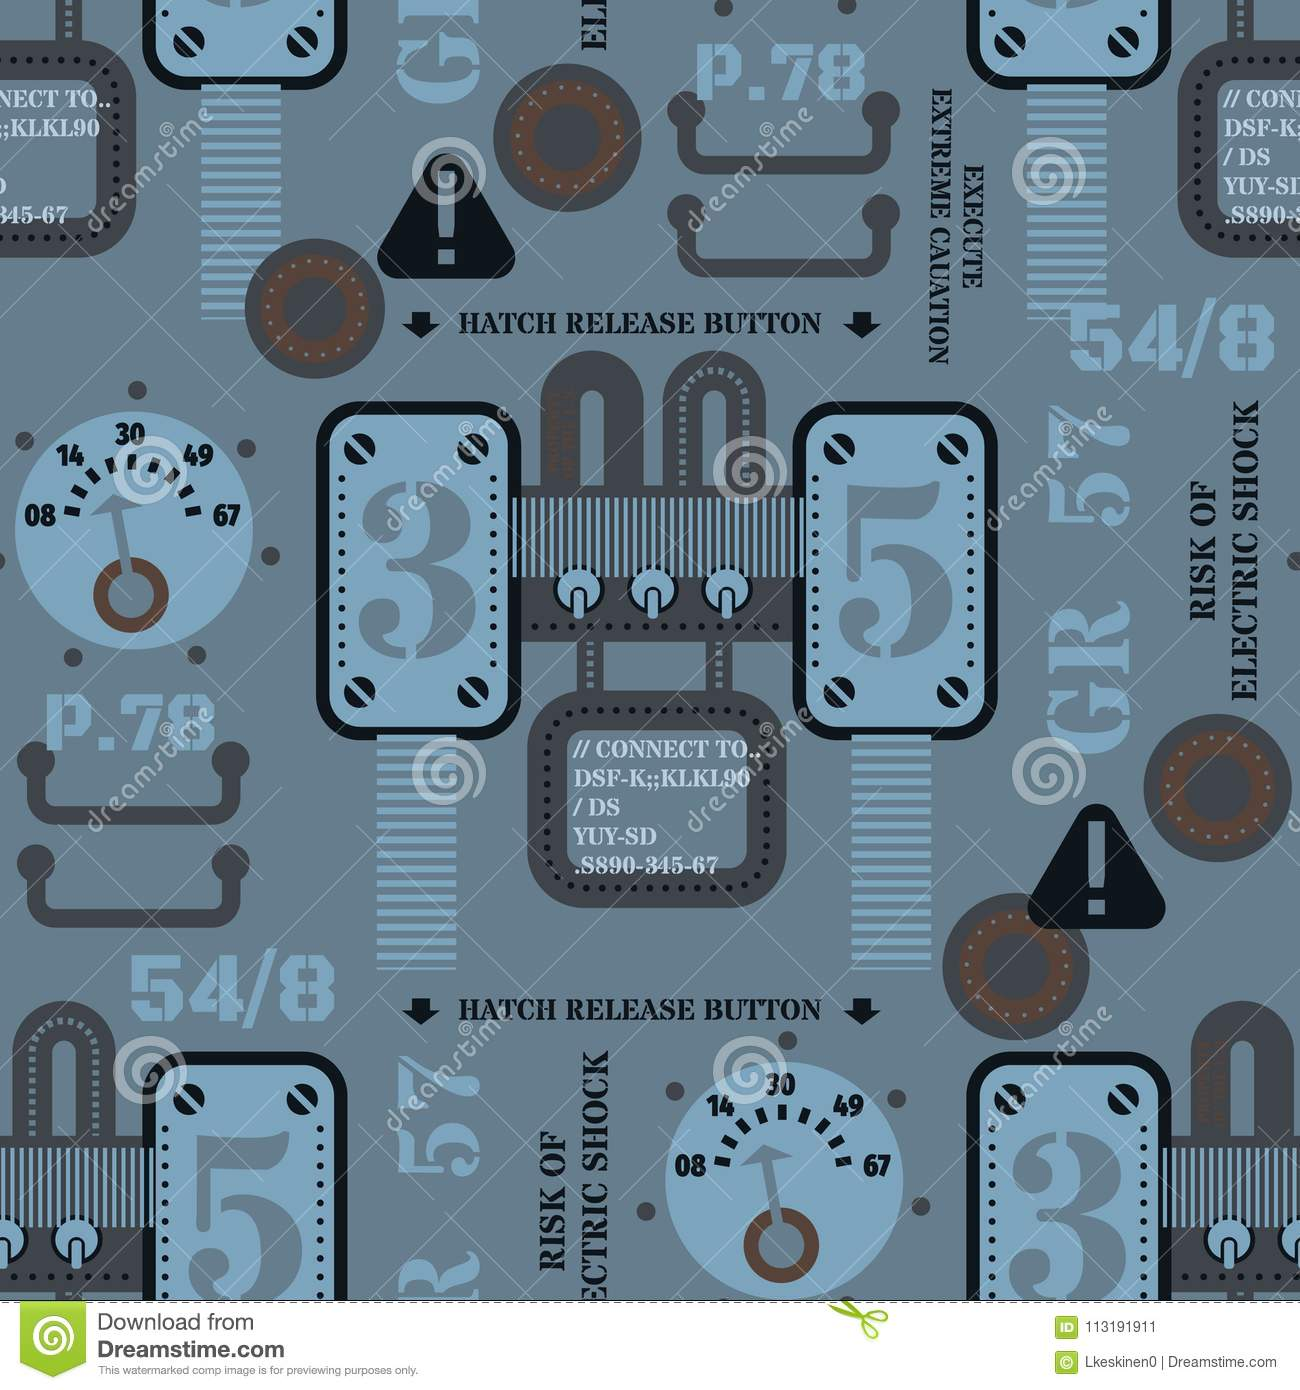 79ff963f1 Robot parts and gear seamless pattern. Original design for print or digital  media.